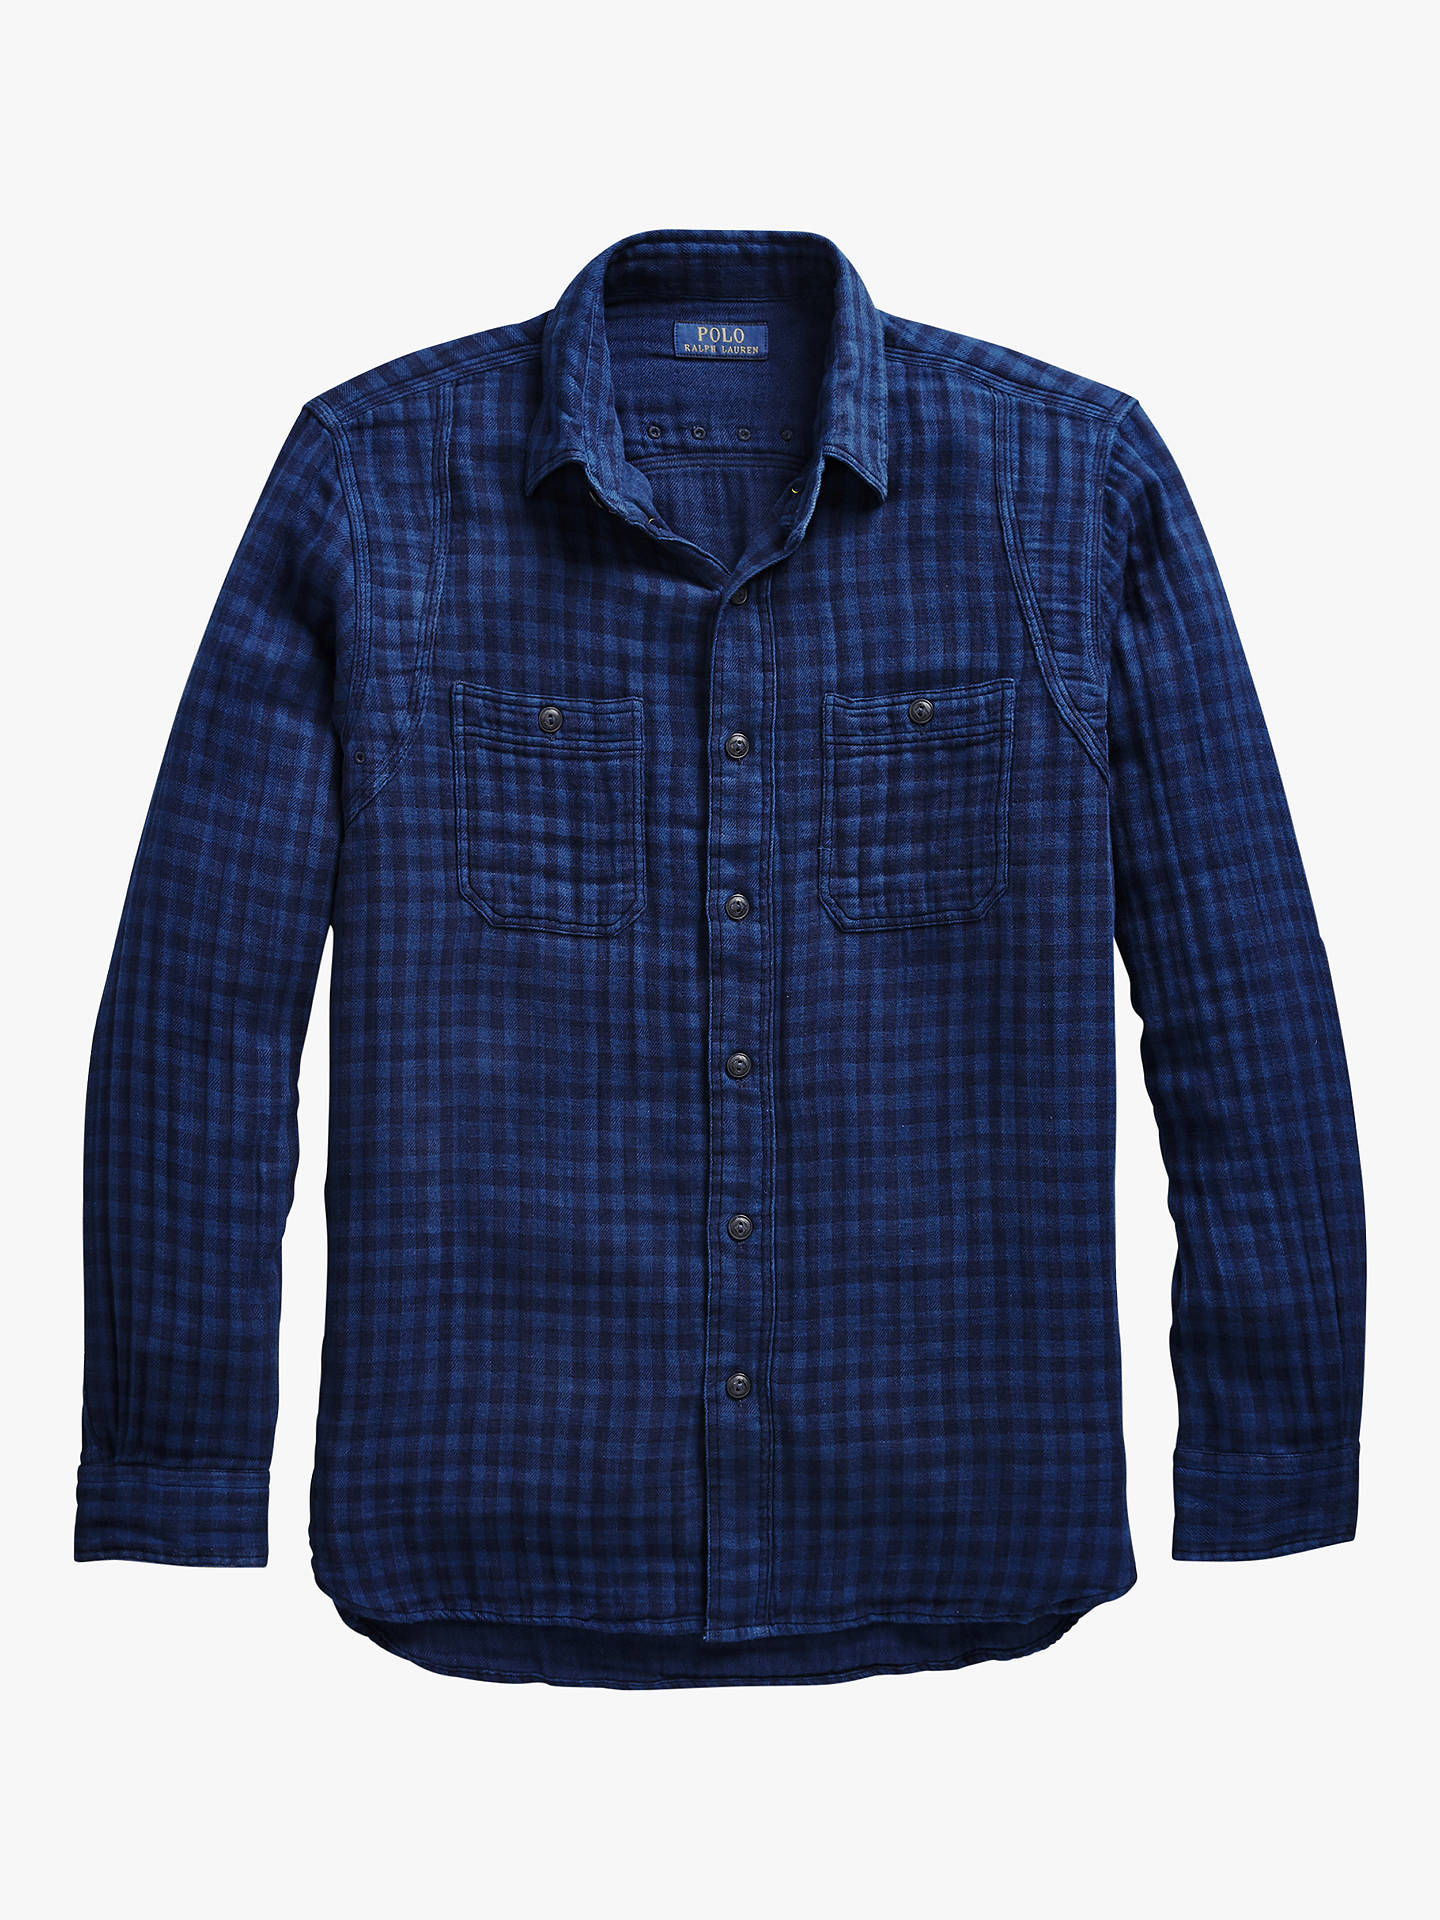 Buy Polo Ralph Lauren Long Sleeve Sport Two Pocket Check Shirt, Indigo/Fed Blue, S Online at johnlewis.com